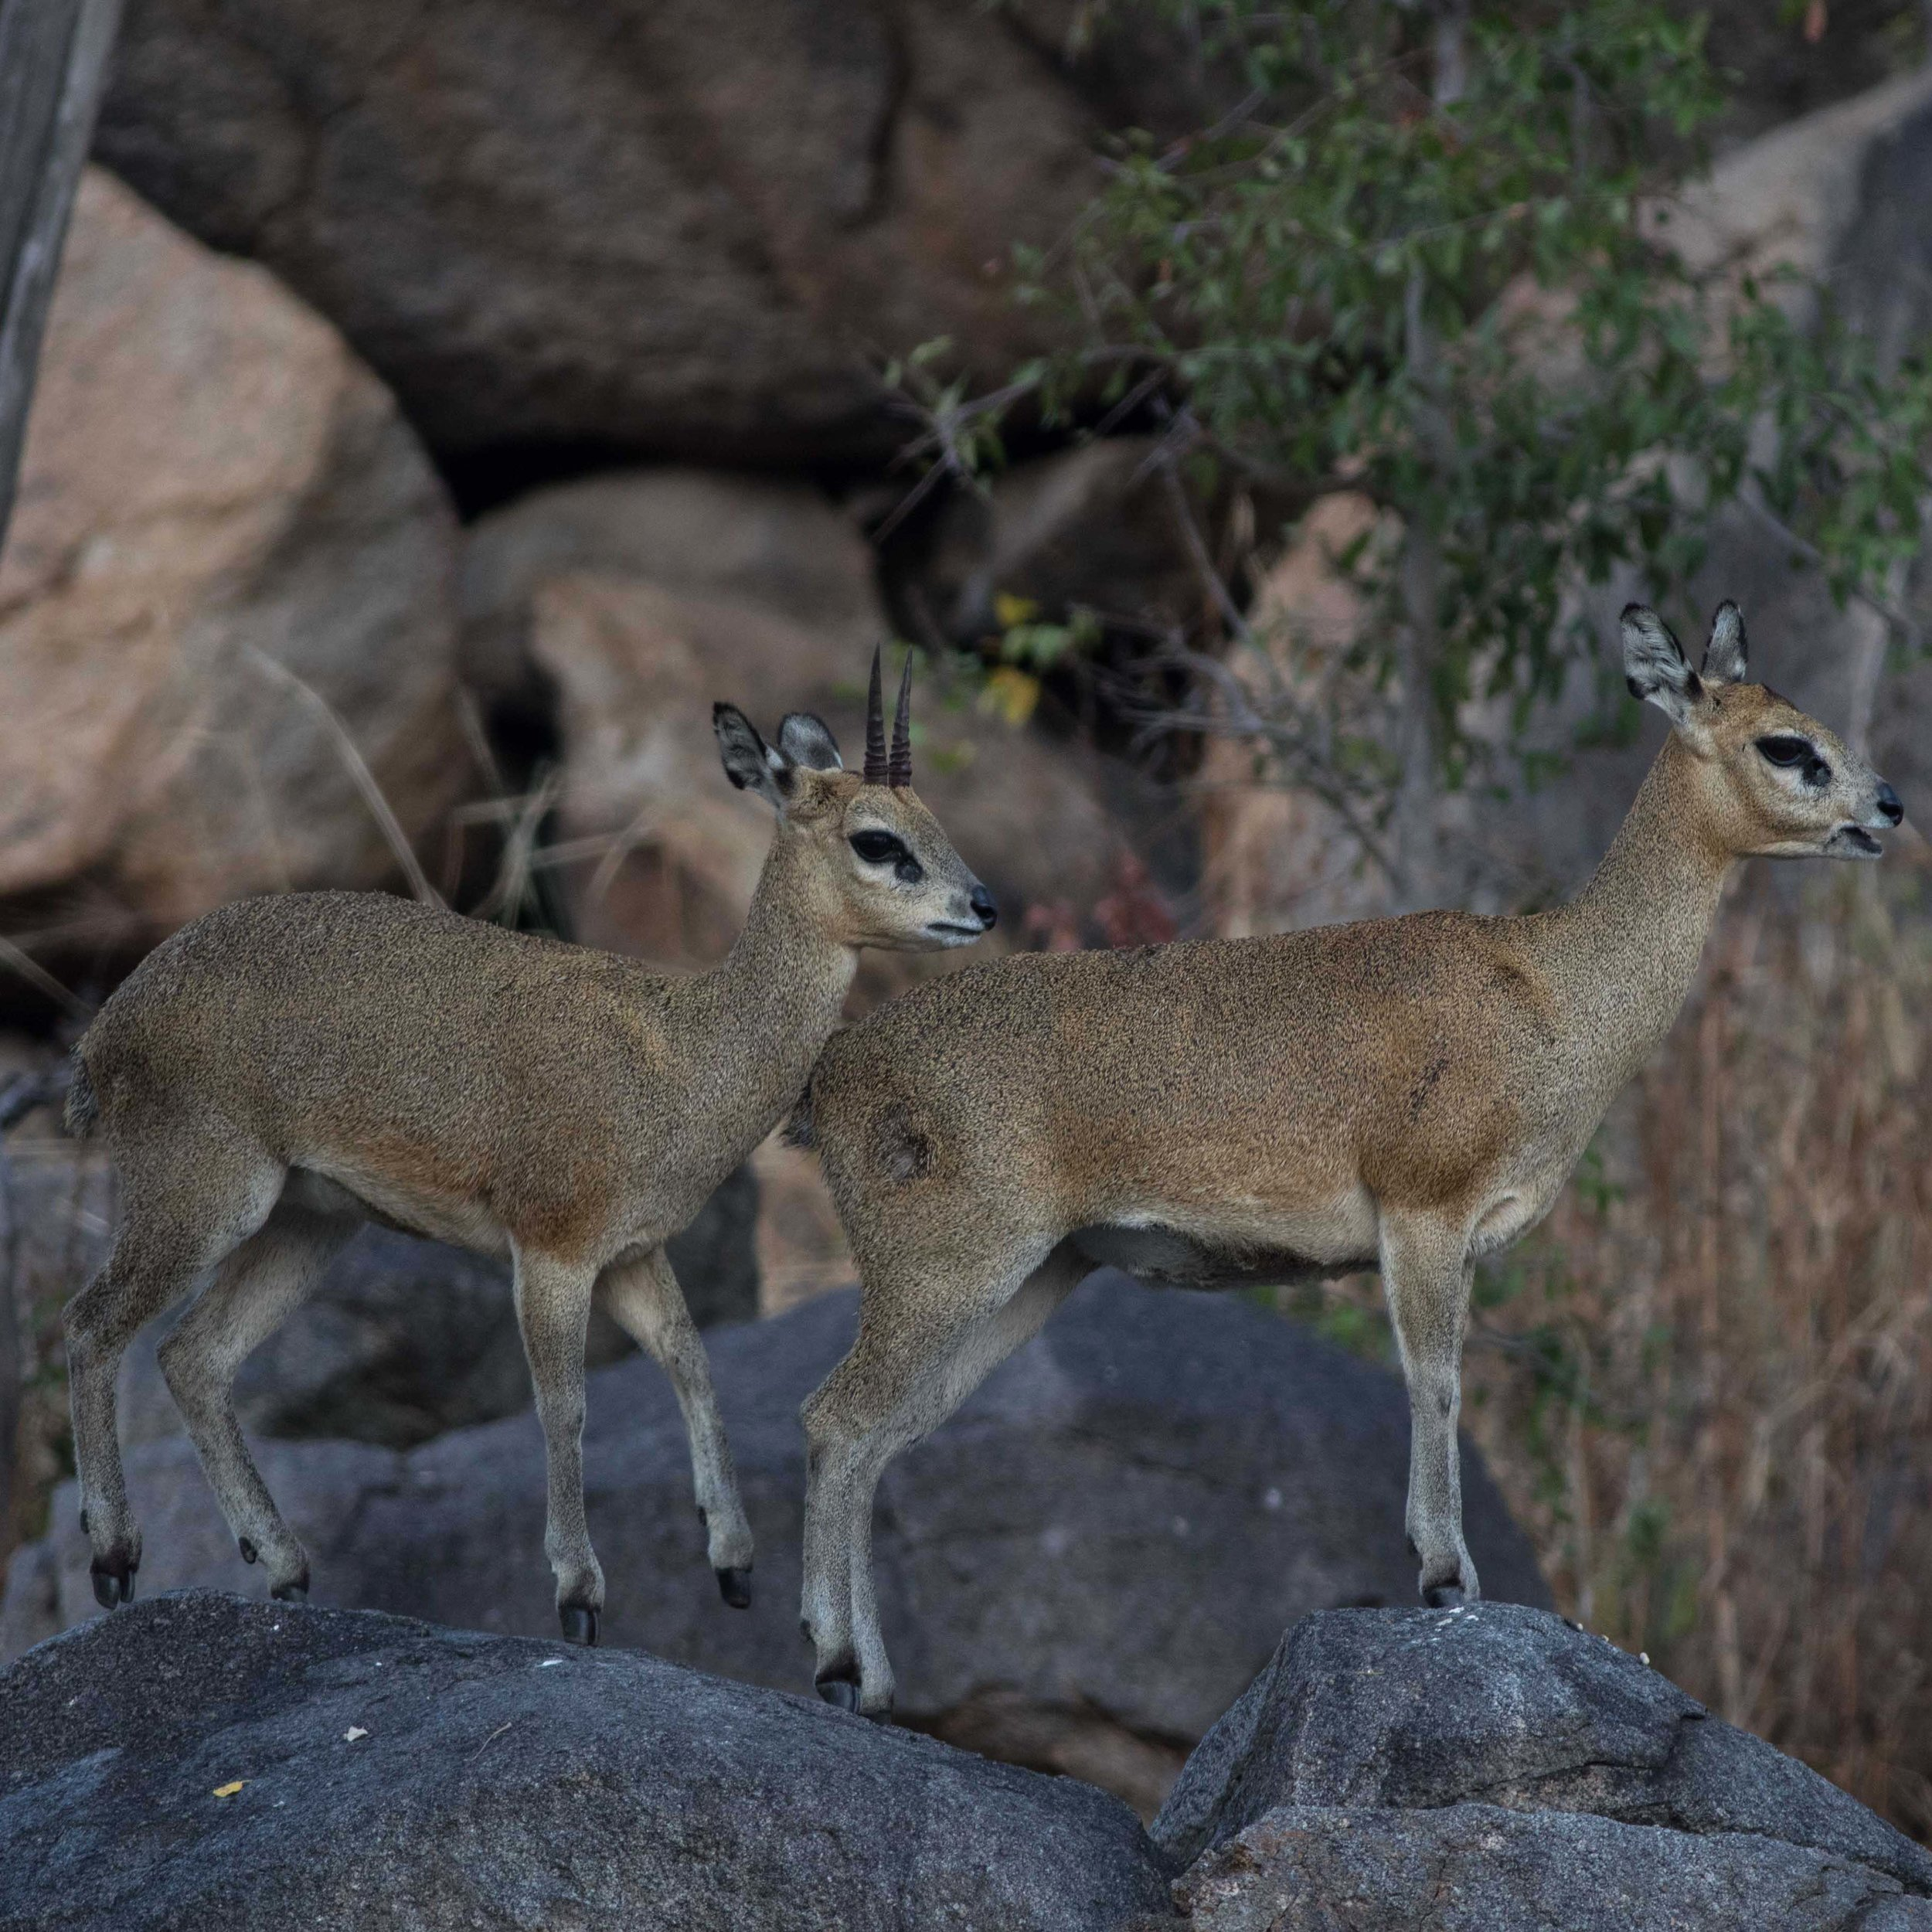 A male (left) and a female (right) klipspringer stand on a rocky outcrop.